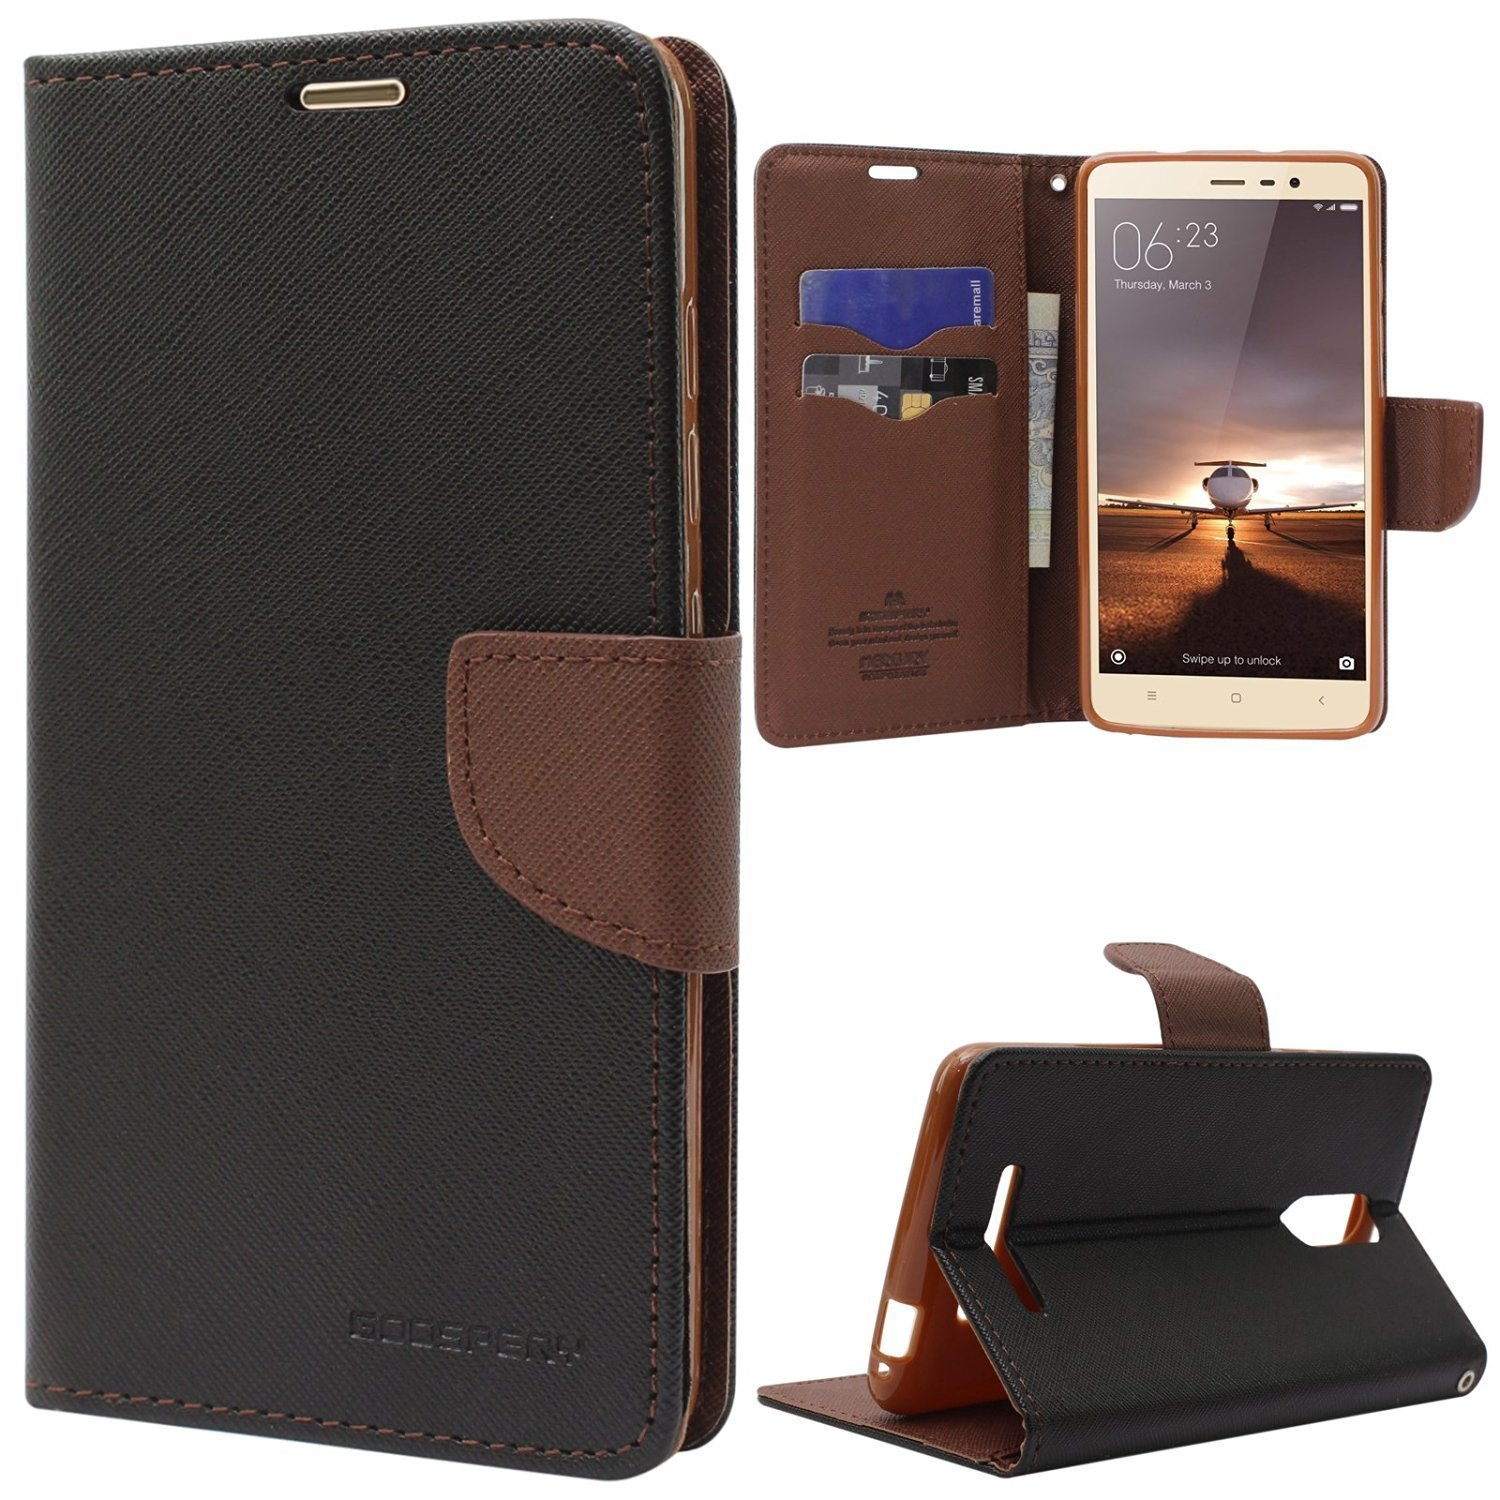 Online India Vivo Y51l Y51 Flip Cover Imported Goospery Iphone X Fancy Diary Case Black Brown Electronics